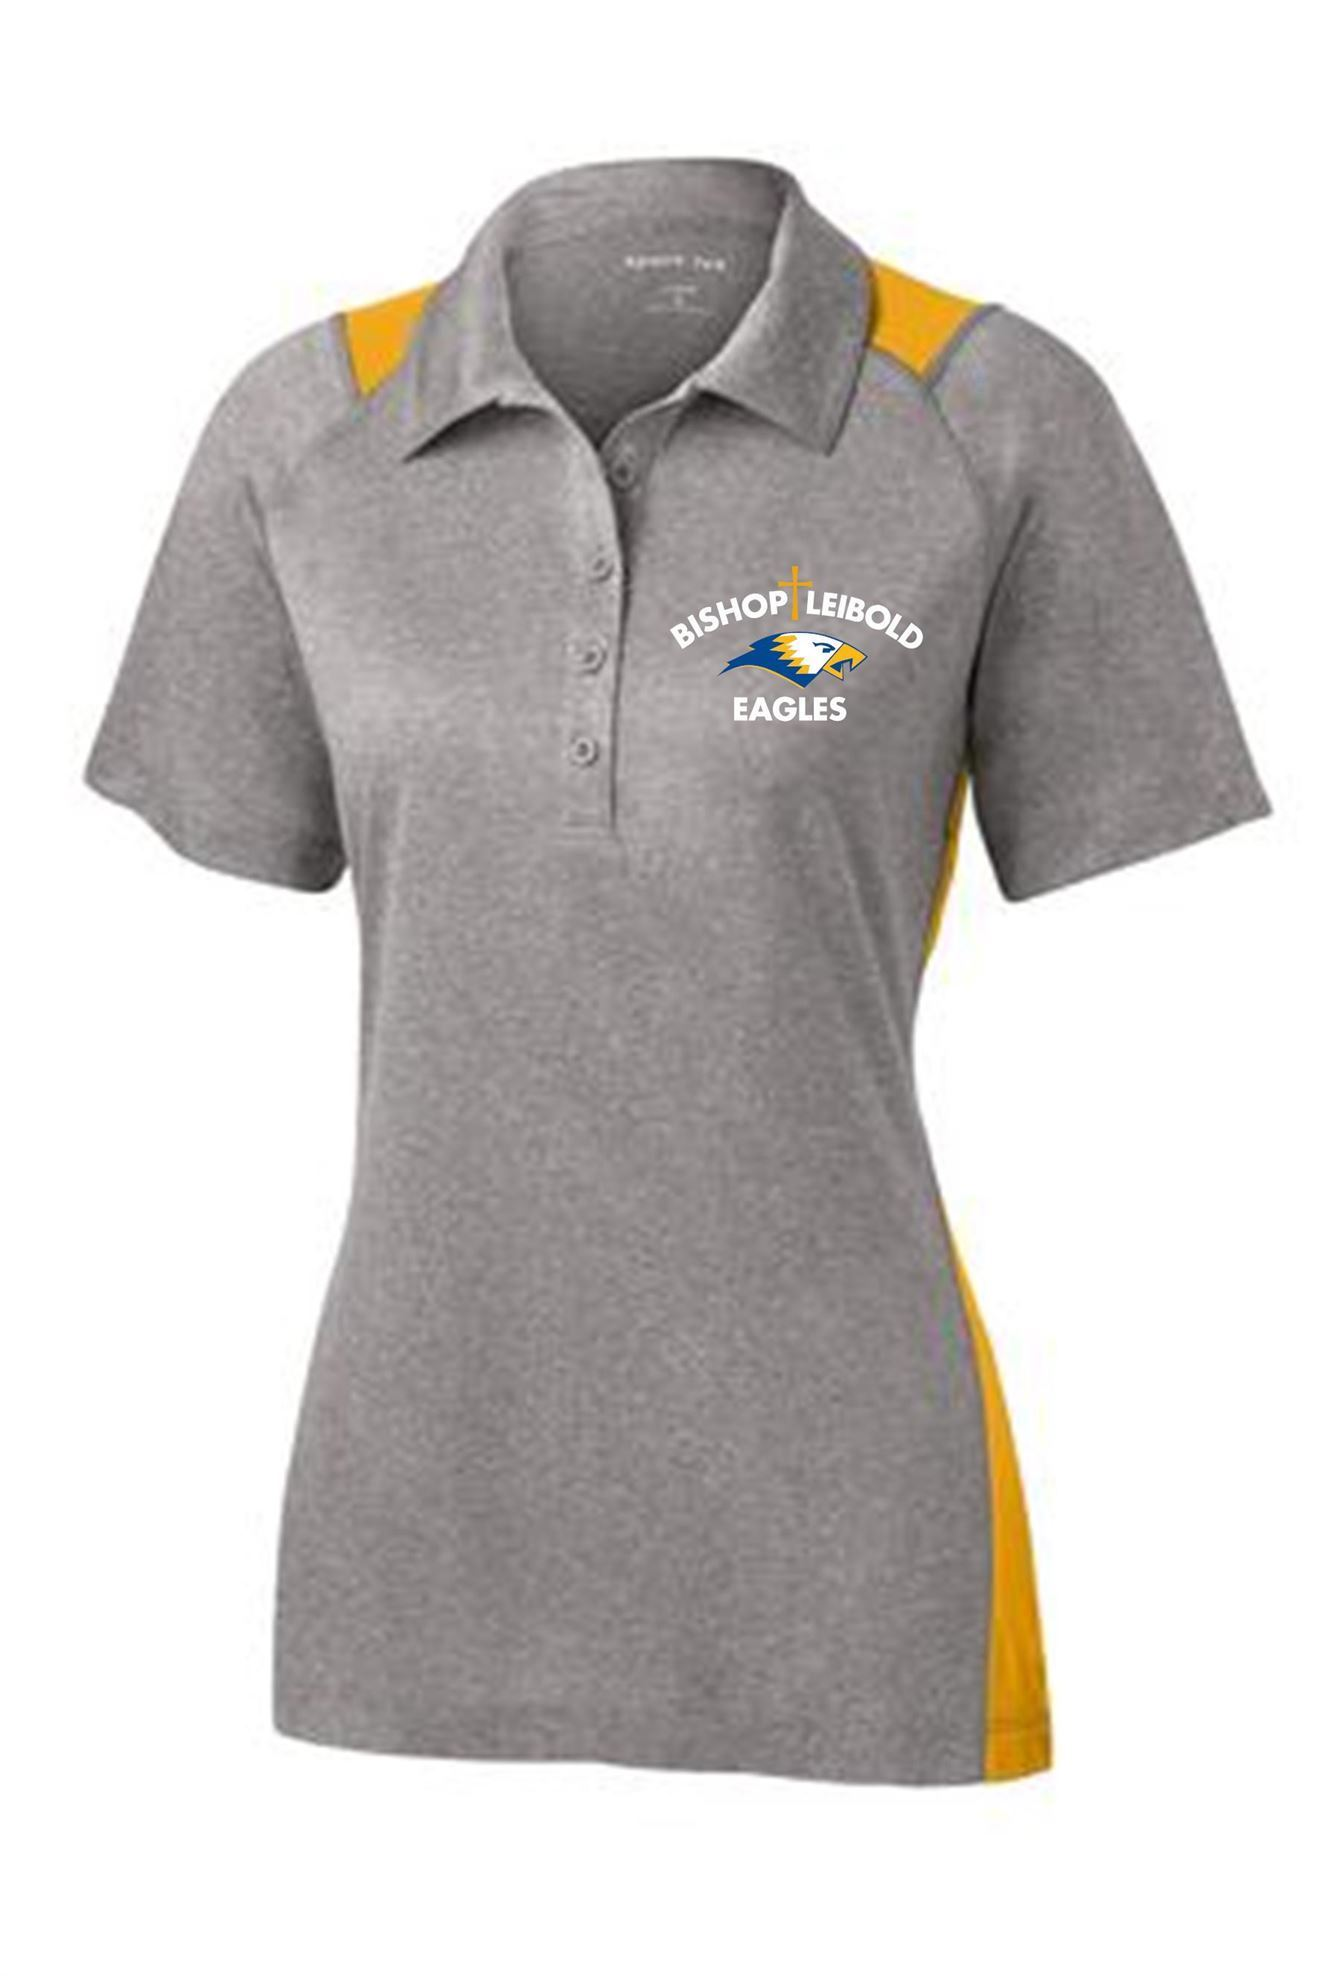 The Spirit In You Bishop Leibold Ladies Performance Polo By Sport Tek Lst665 Grey Gold Or Grey Royal Blue Refine your search for sportek yoga pants. the spirit in you